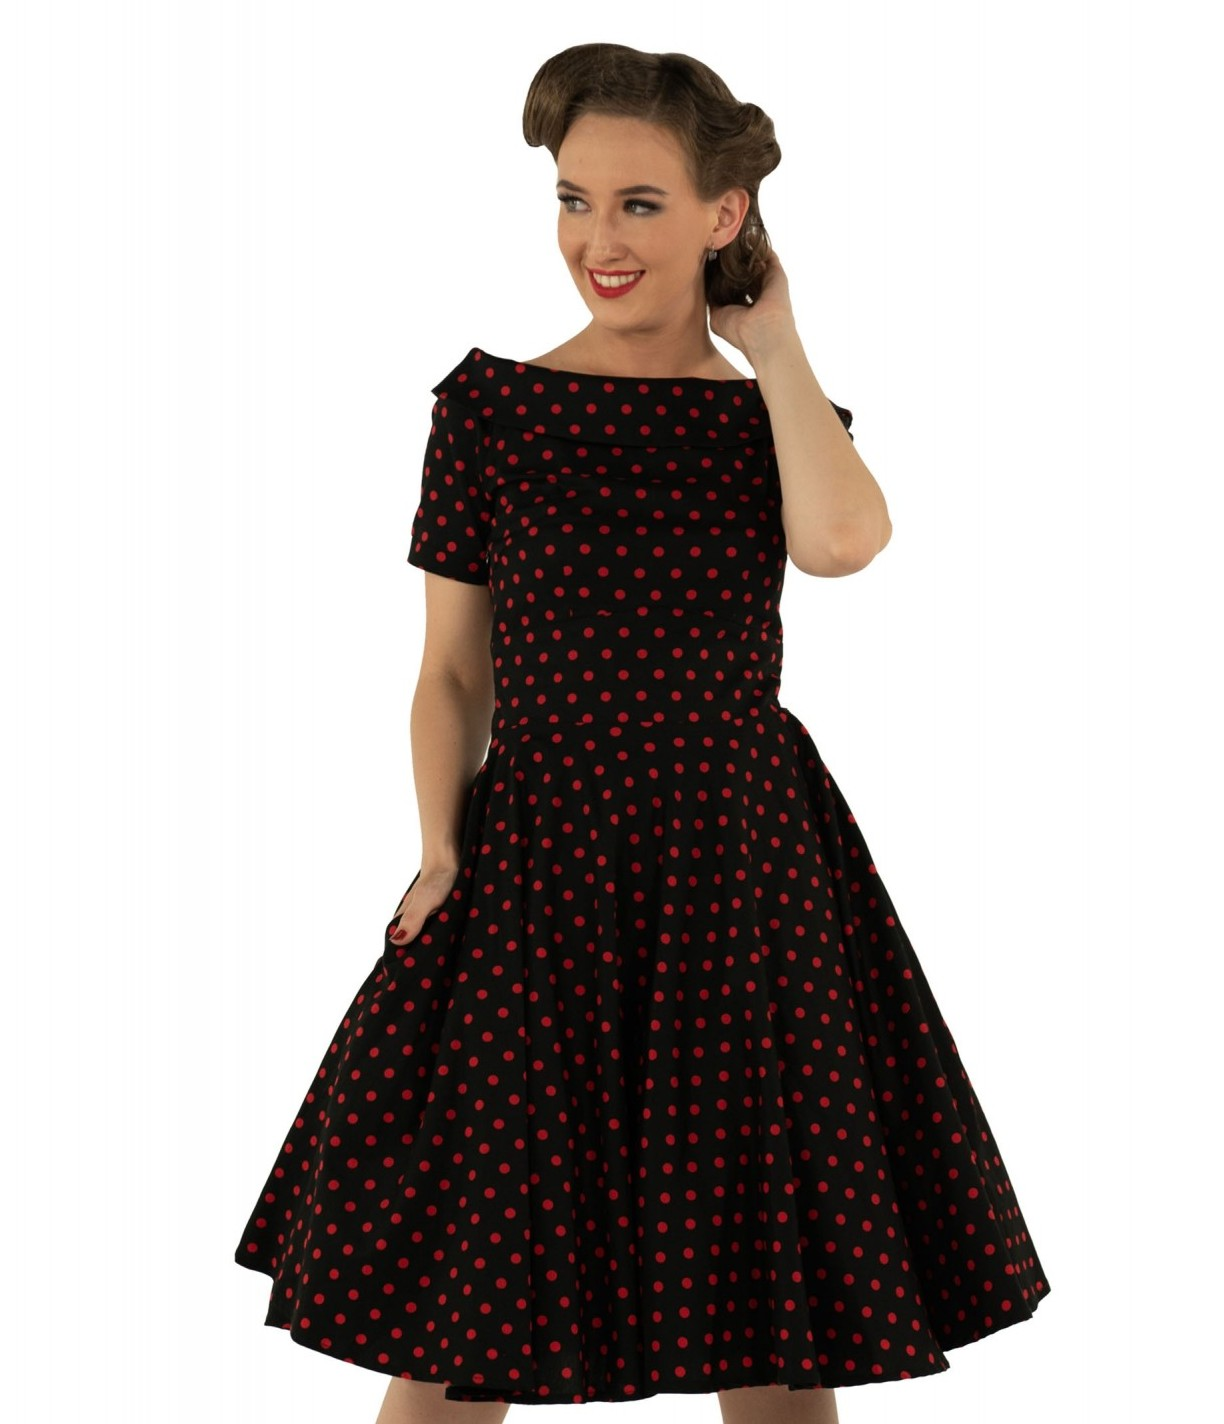 Dolly & Dotty Black Red Polka Dot Darlene Dress